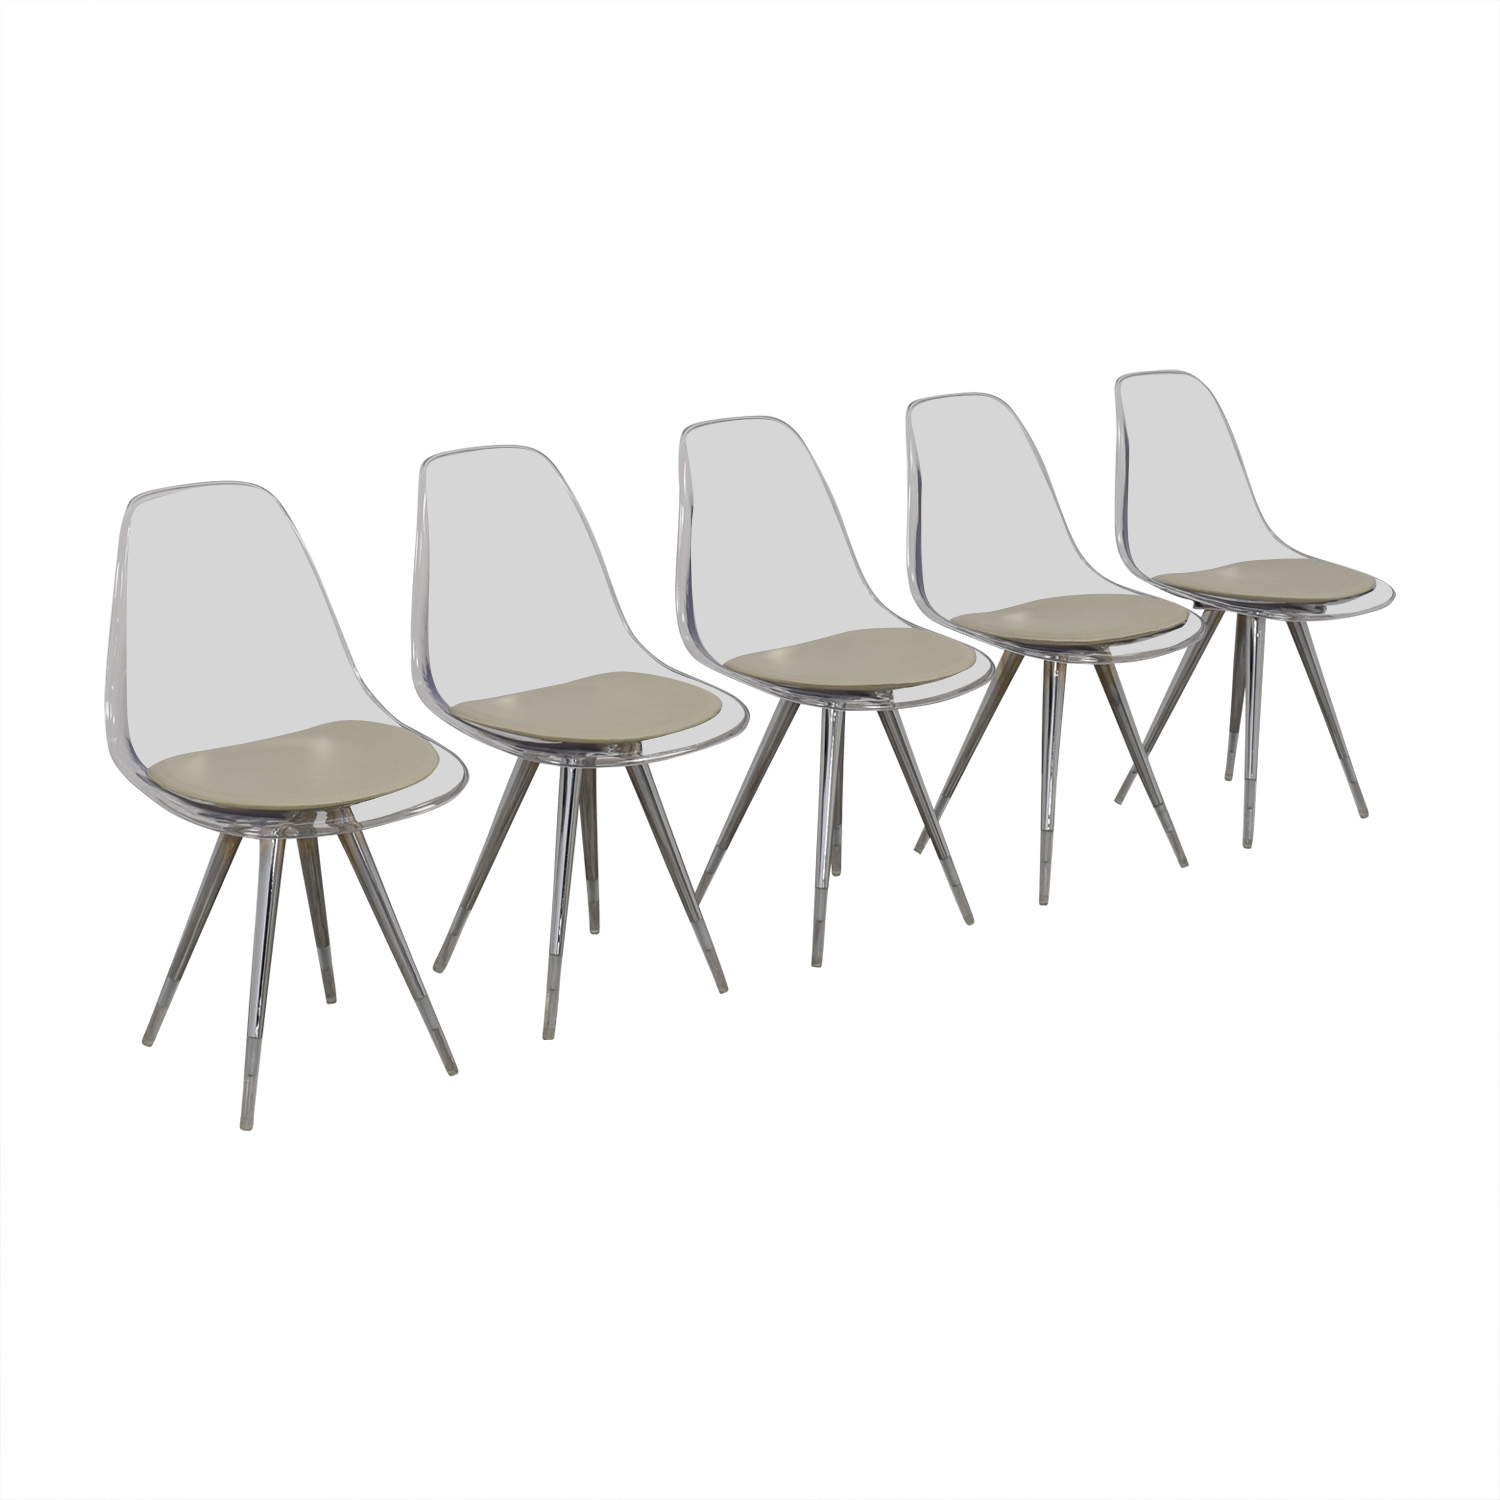 buy Cite NYC Lucite Dining Chairs with Custom Cushions Cite NYC